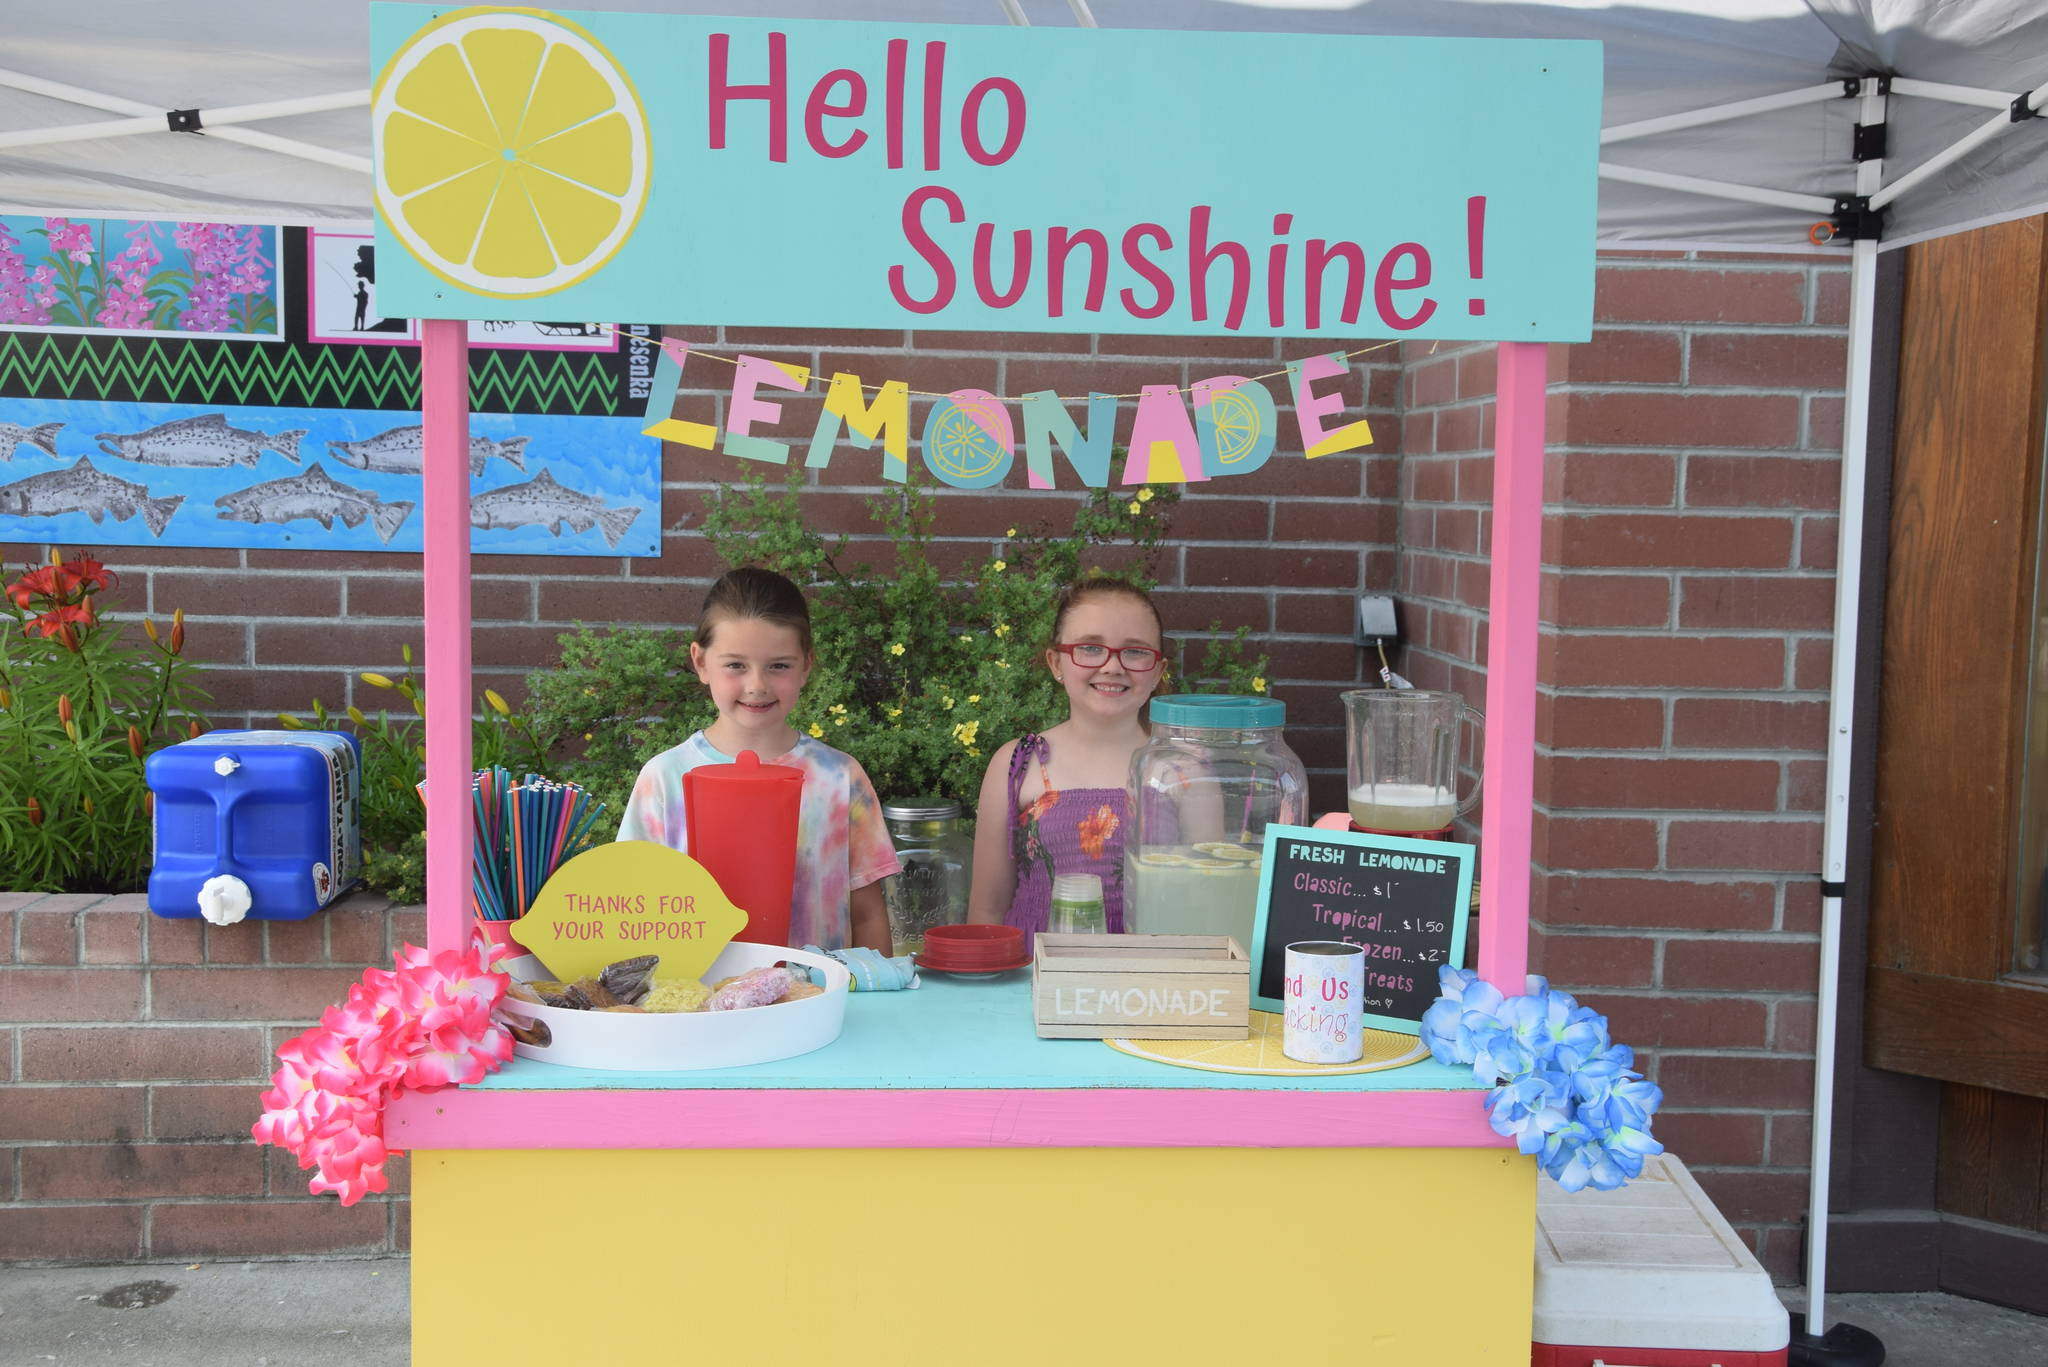 Brooklynne Timm, left, and Kinley Clack, right, smile for the camera at their lemonade stand outside of Sweeney's during Lemonade Day in Soldotna, Alaska on June 29, 2019. (Photo by Brian Mazurek/Peninsula Clarion)